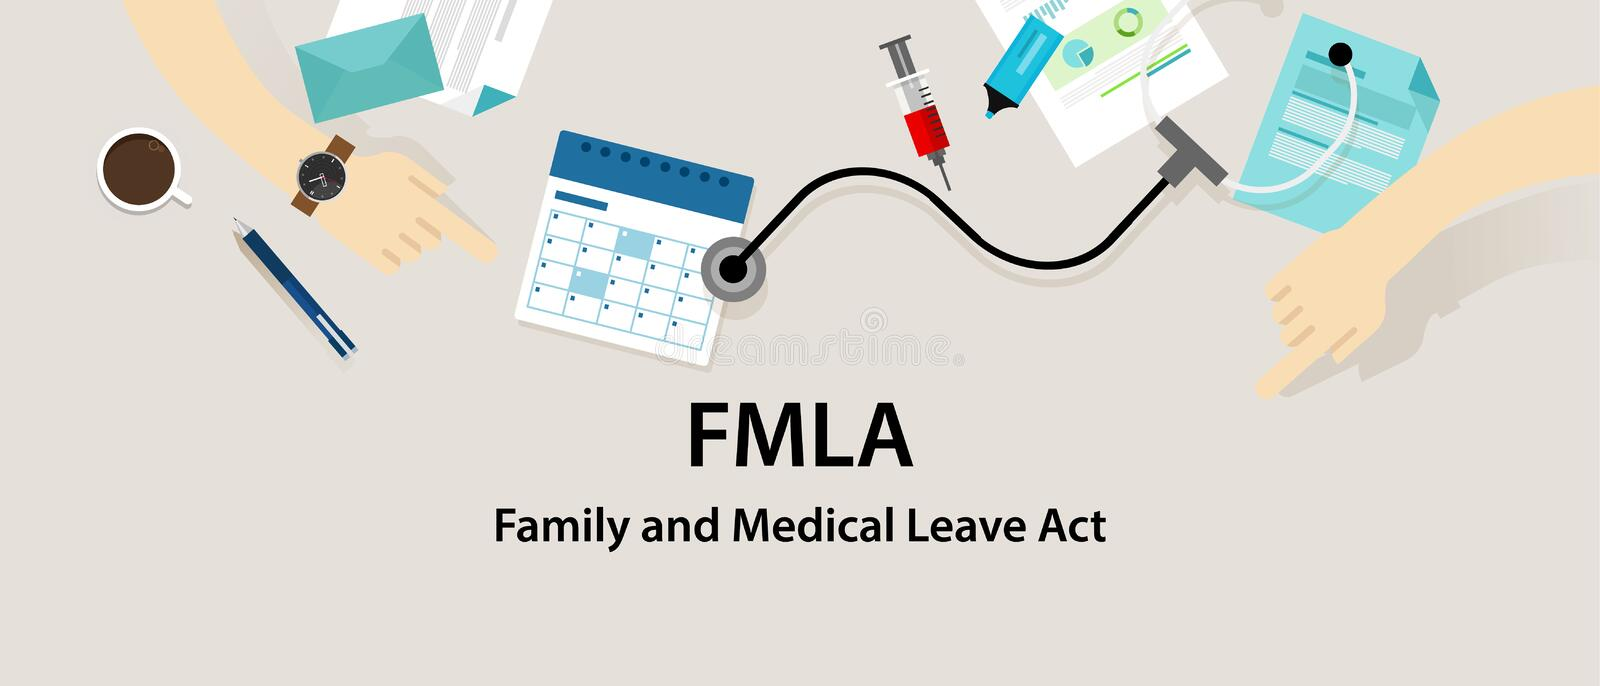 FMLA Family and Medical Leave Act royalty free illustration